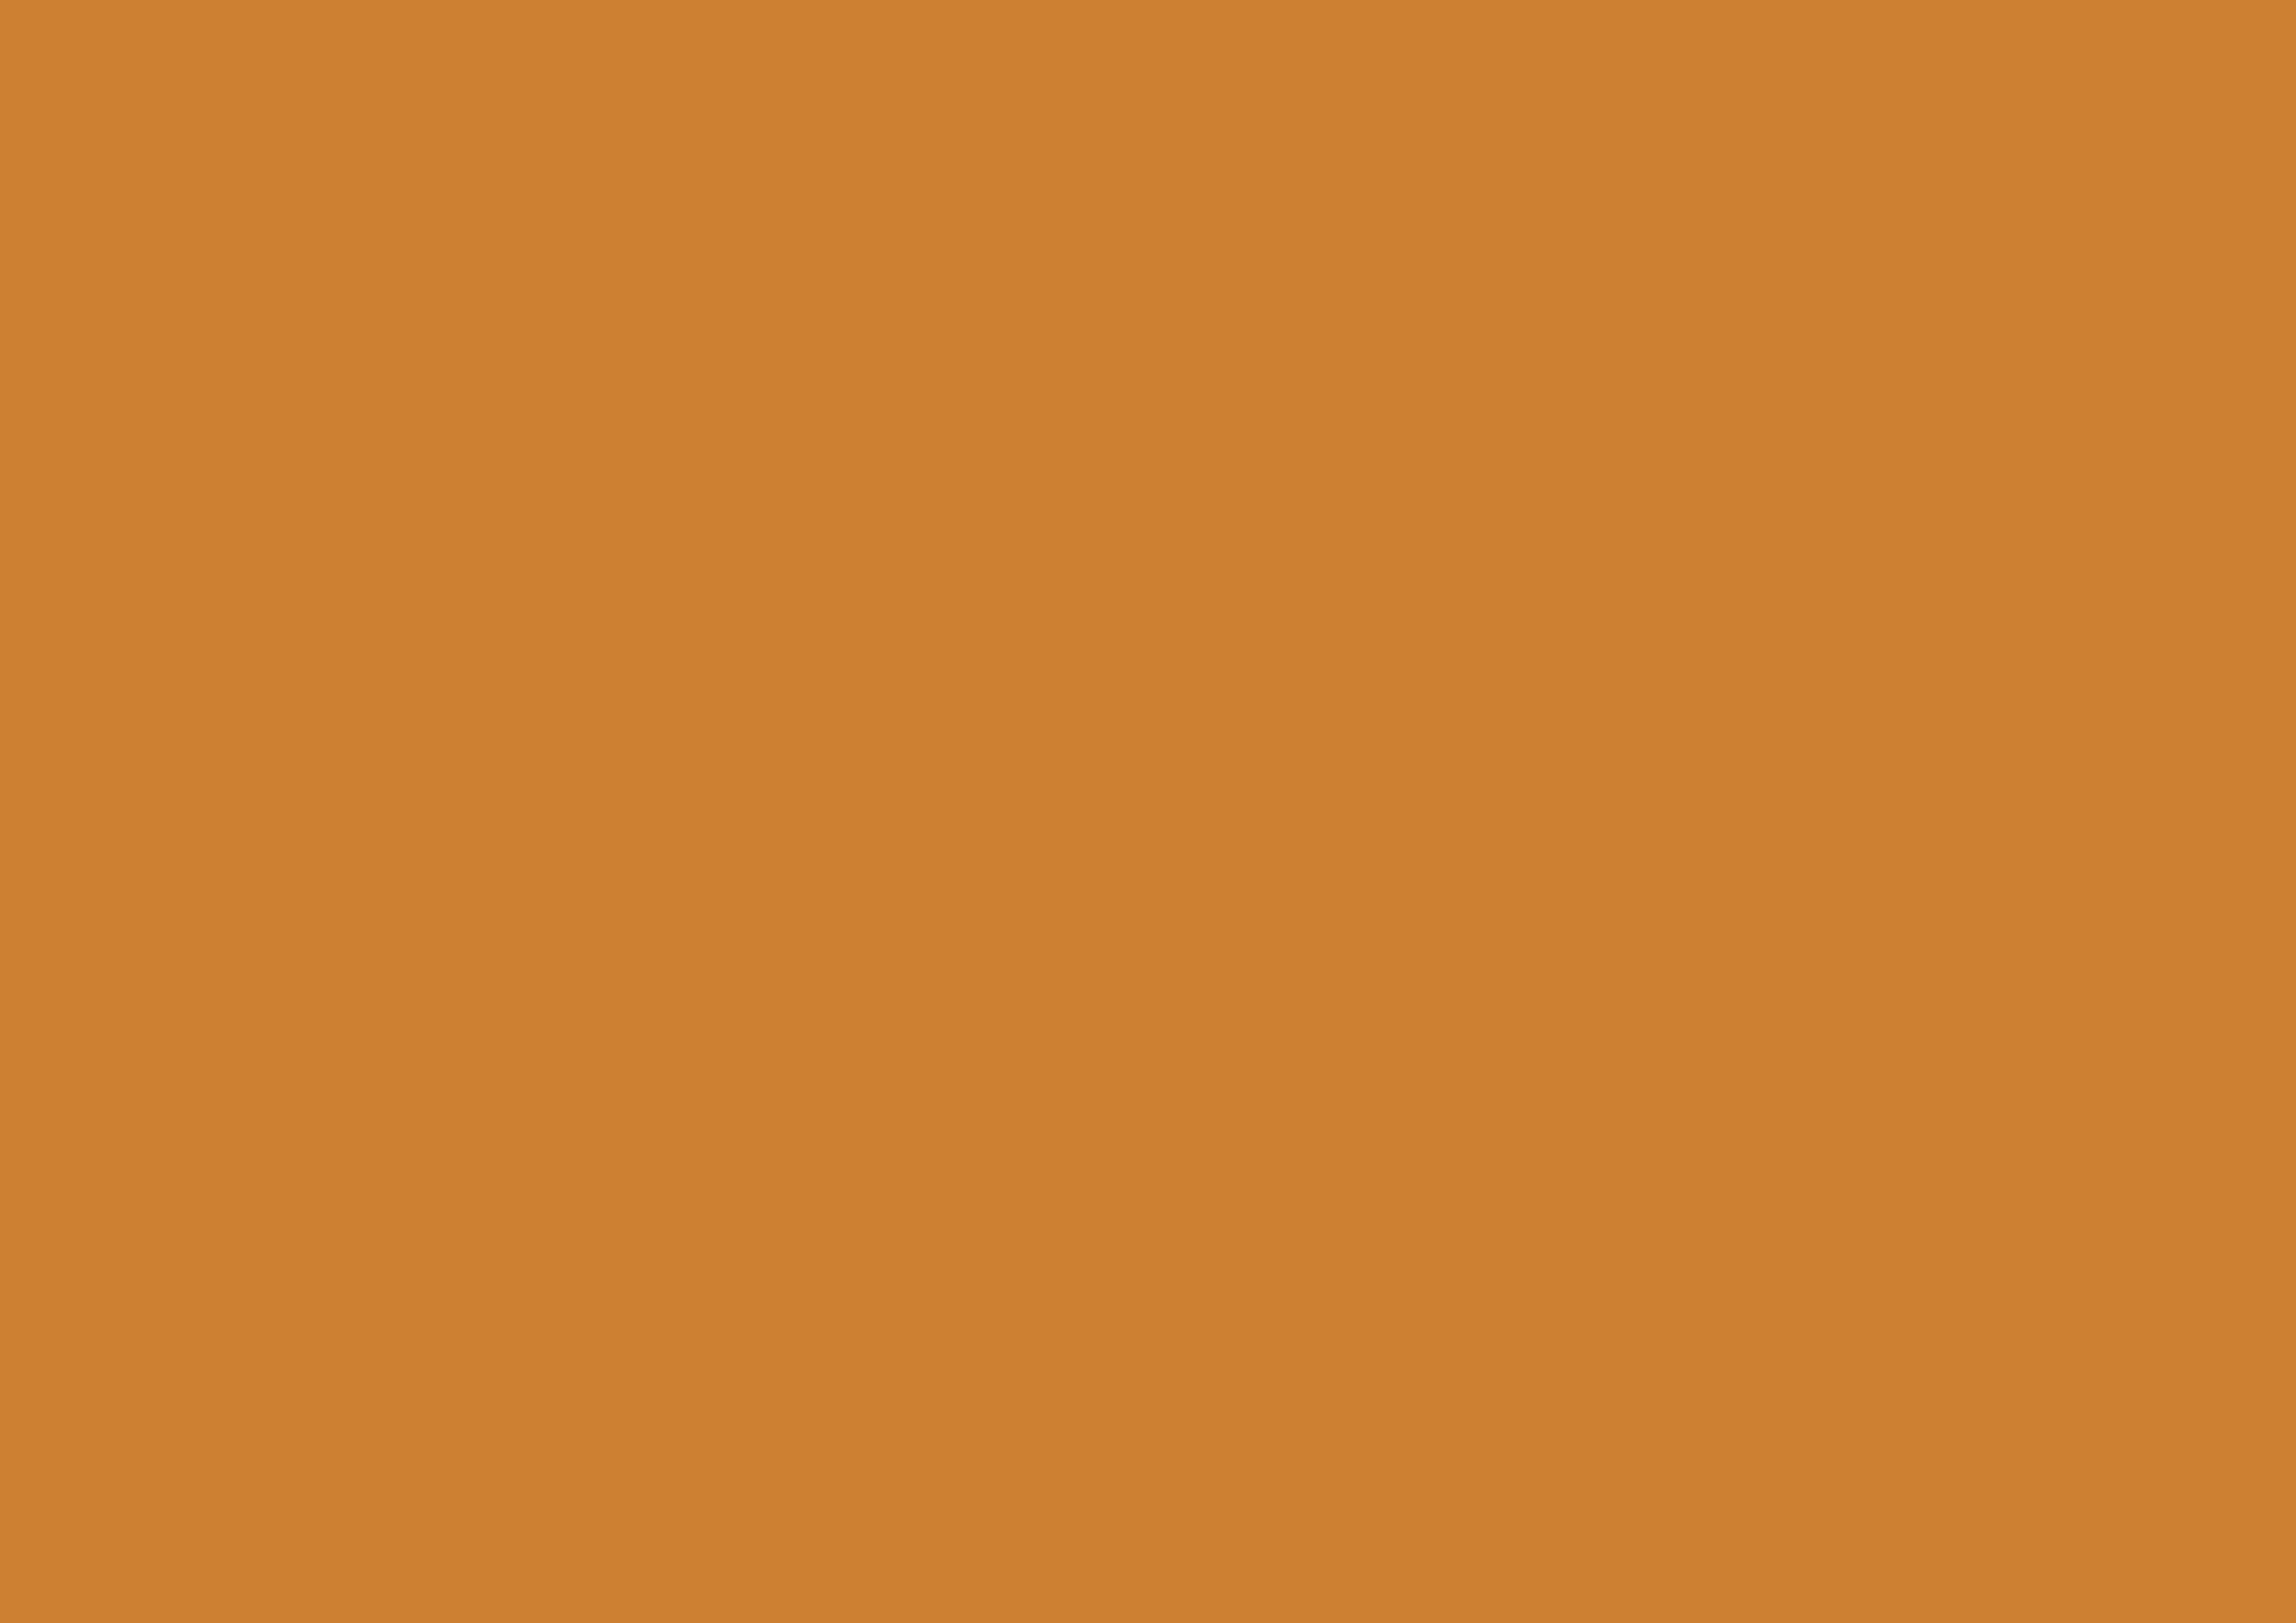 3508x2480 Bronze Solid Color Background